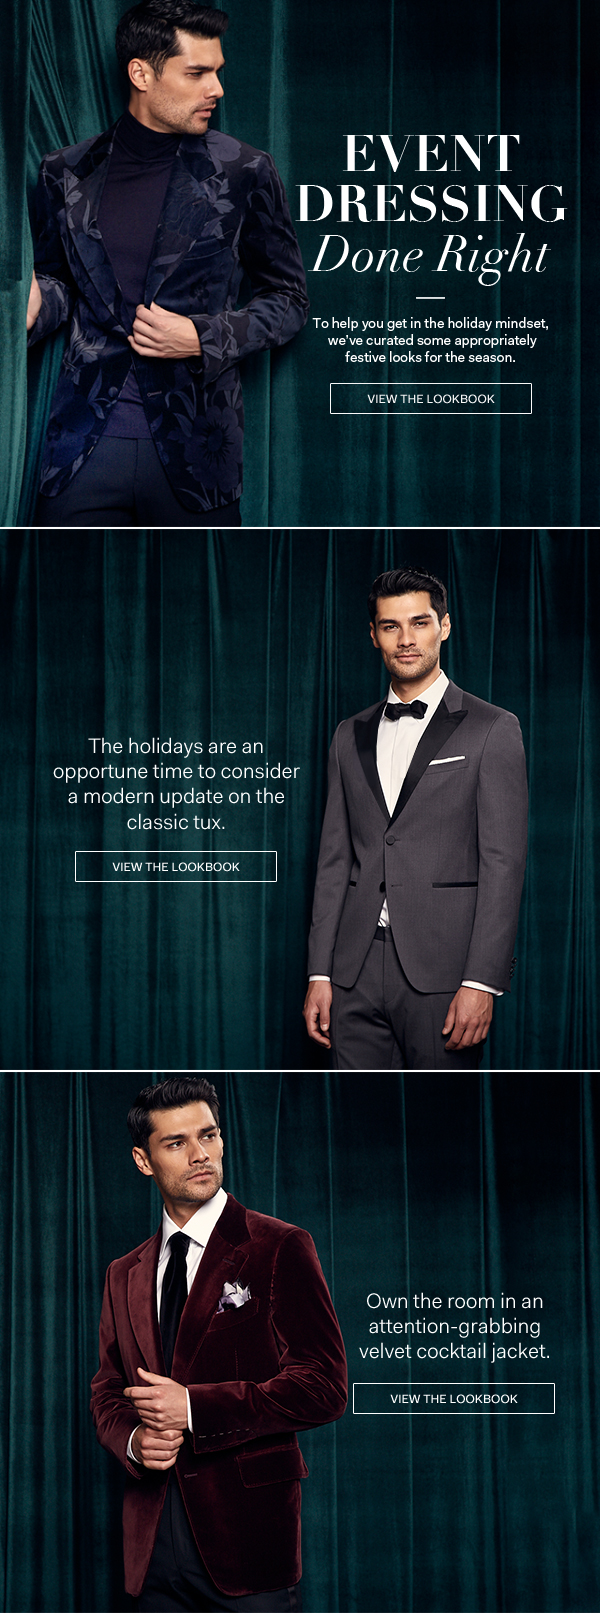 email-event-dressing